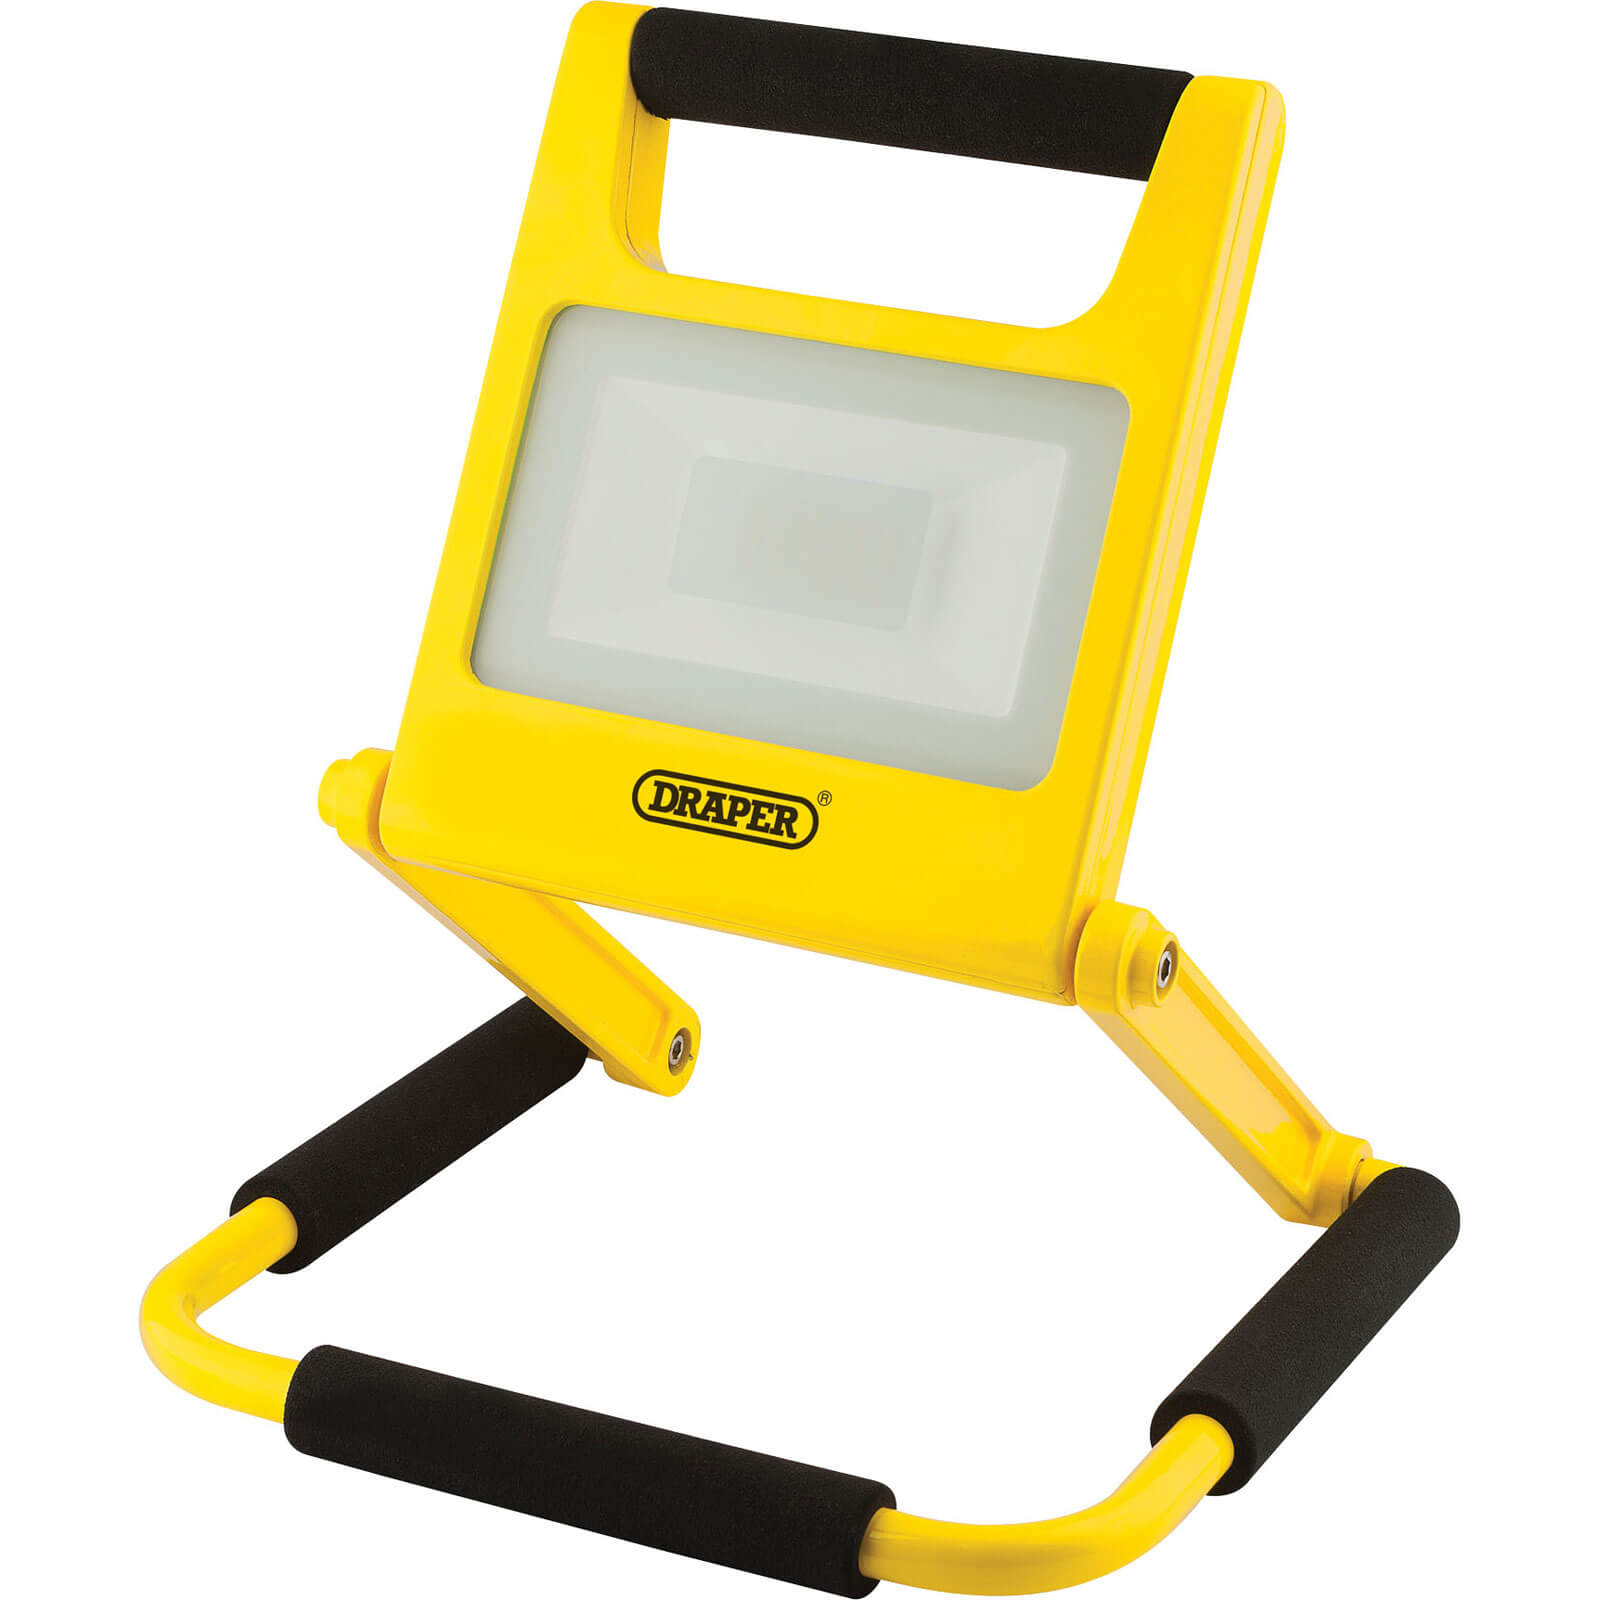 Image of Draper 10W SMD LED Rechargeable Worklight